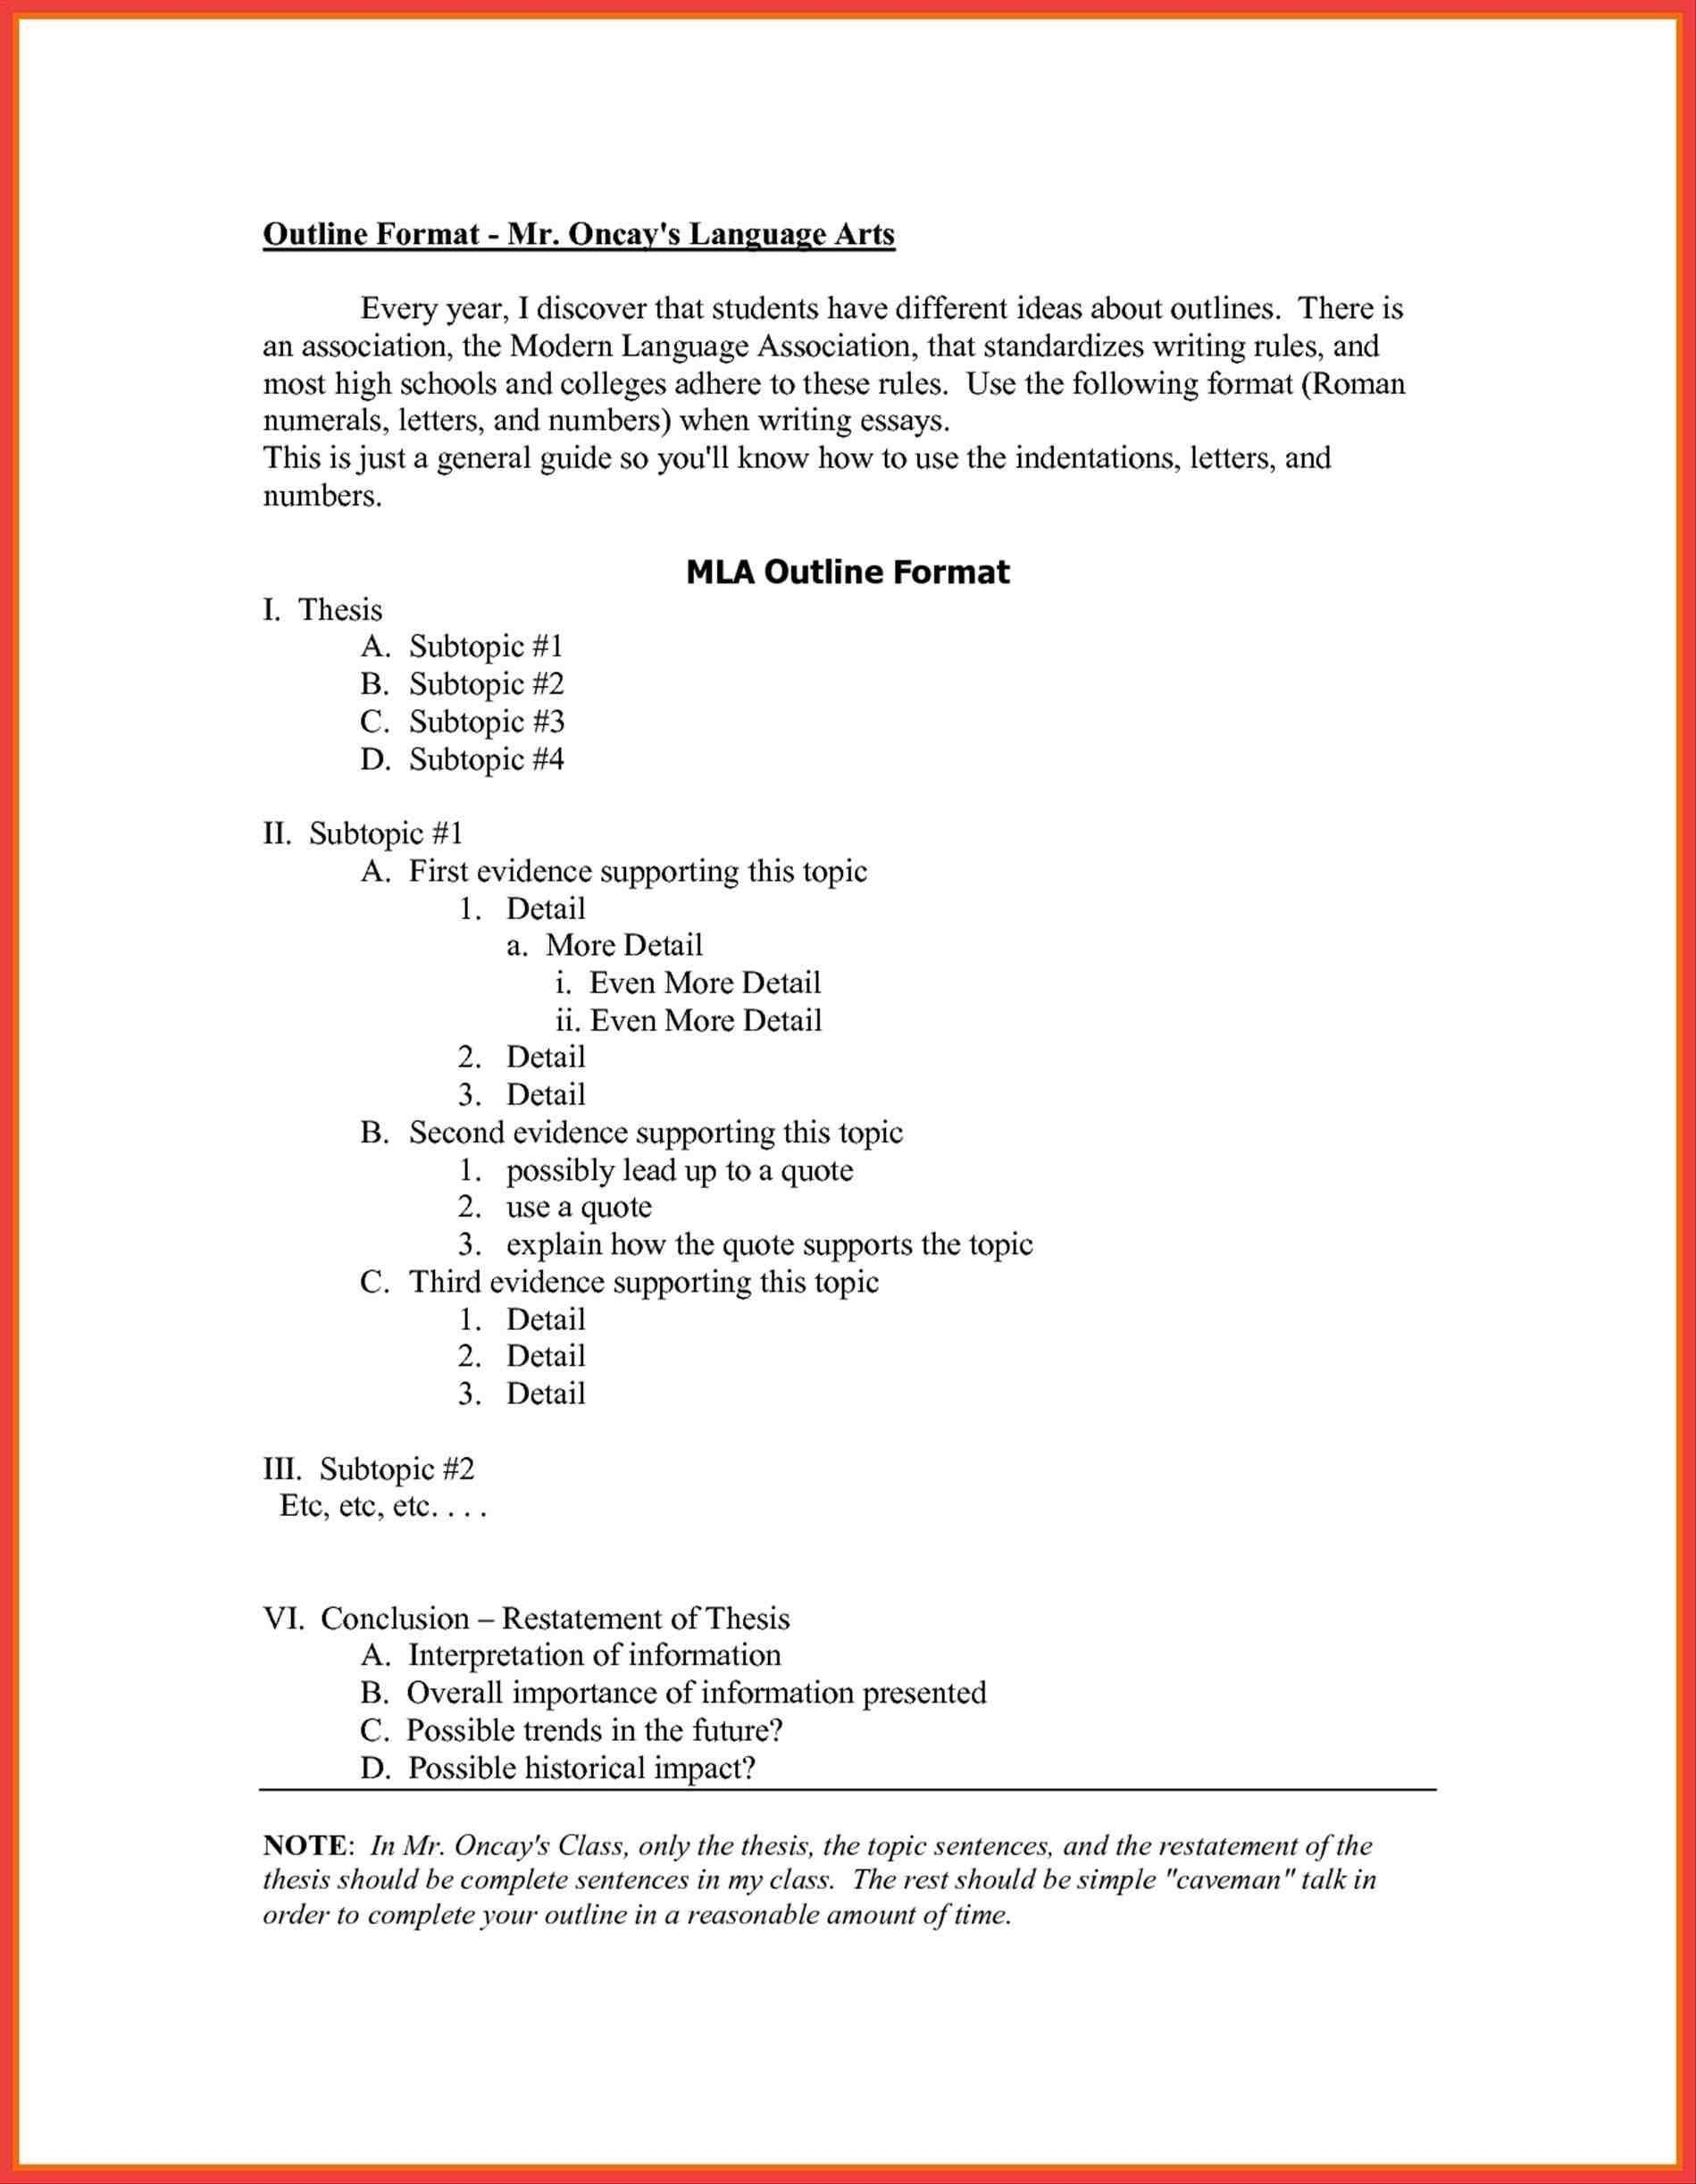 004 Singular Mla Format Outline Template High Definition  Research PaperFull